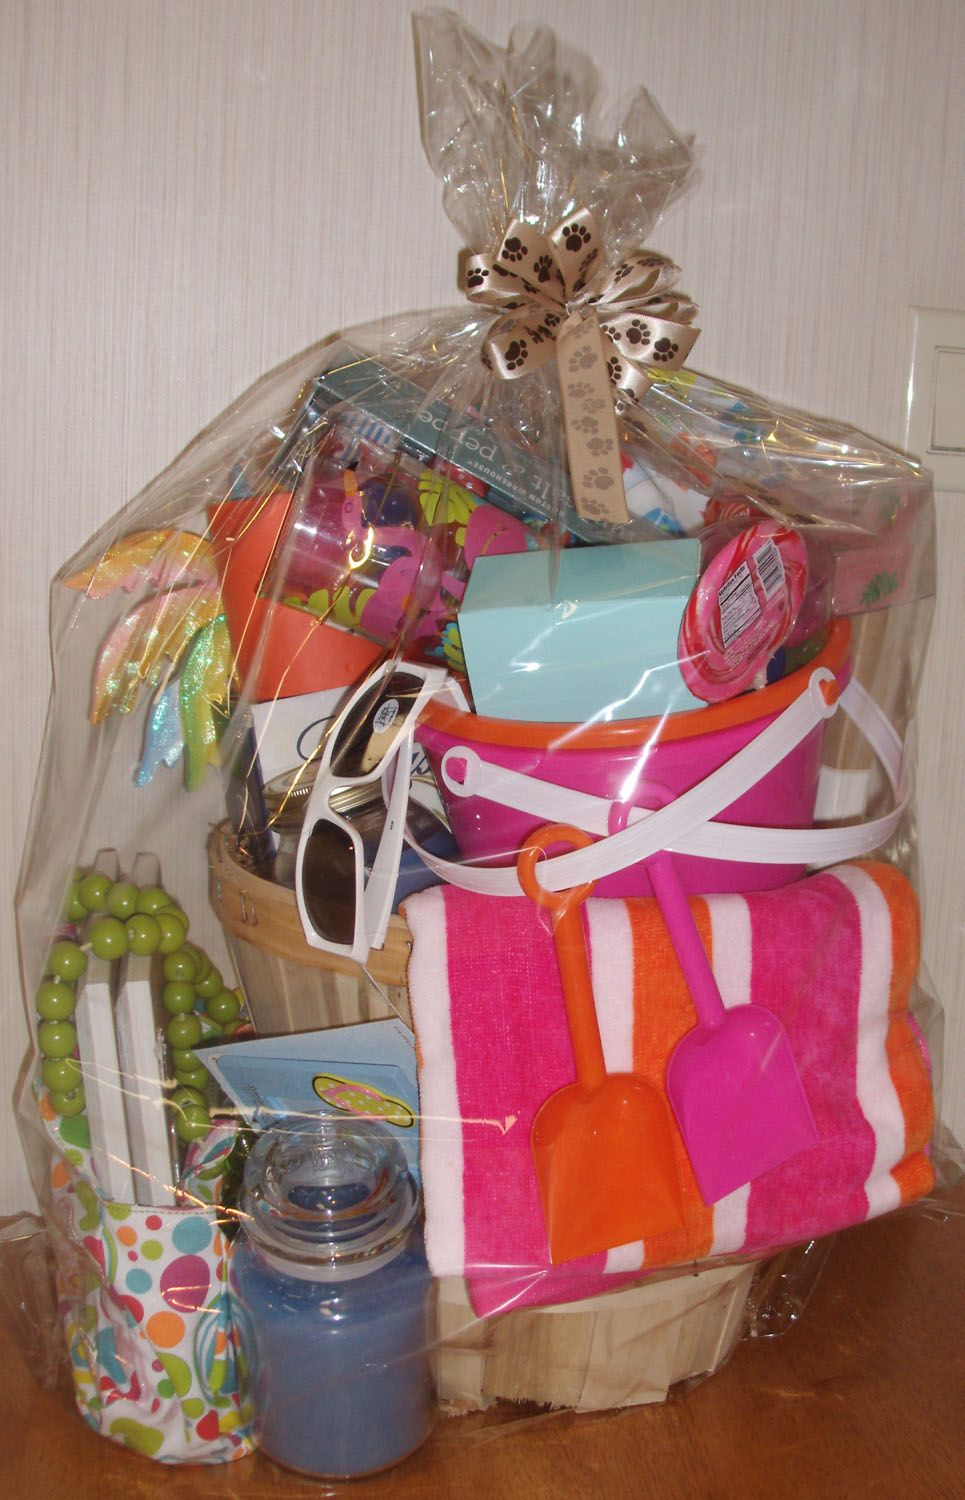 Basket Themes for Raffles | this year our themed raffle basket is beach party br…